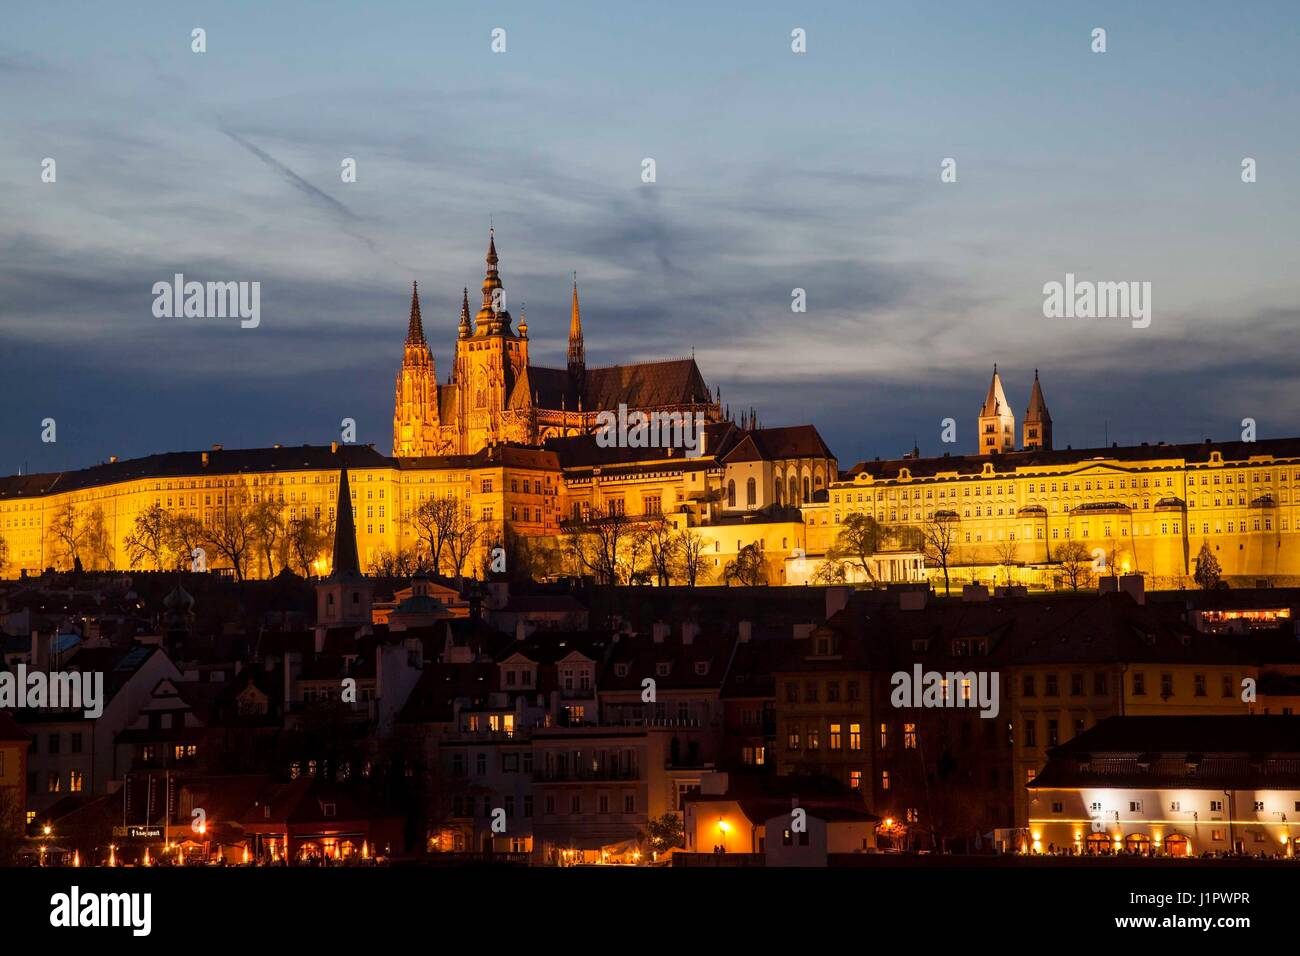 Nighttime view of Prague  over the river Vltava towards the castle - Stock Image